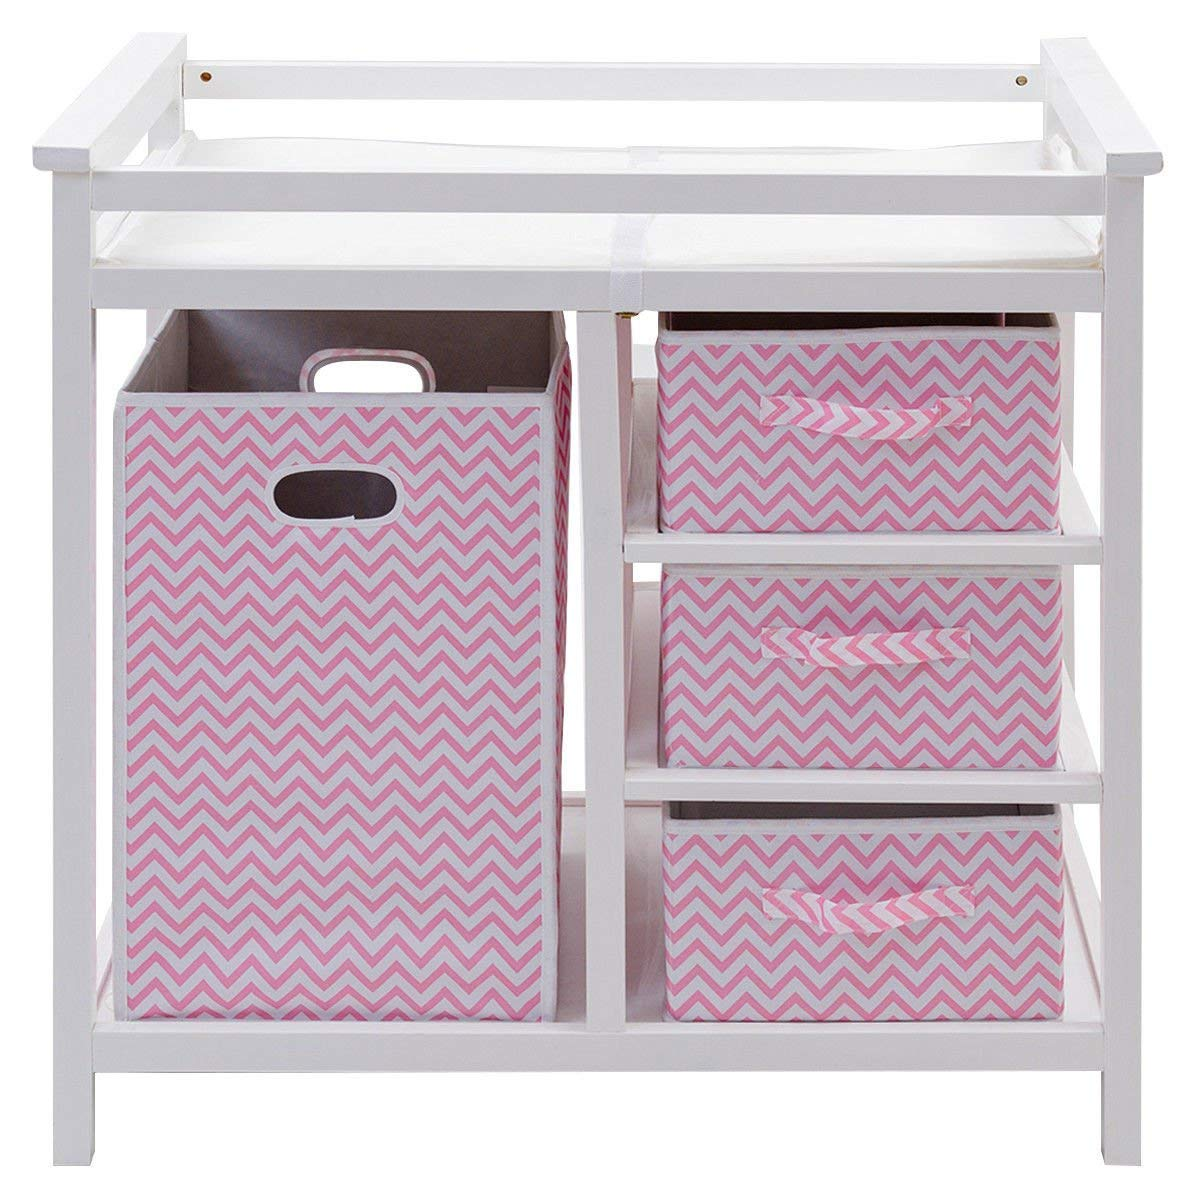 HONEY JOY Baby Changing Table, Diaper Storage Nursery Station with Hamper and 3 Baskets (White+Pink) by HONEY JOY